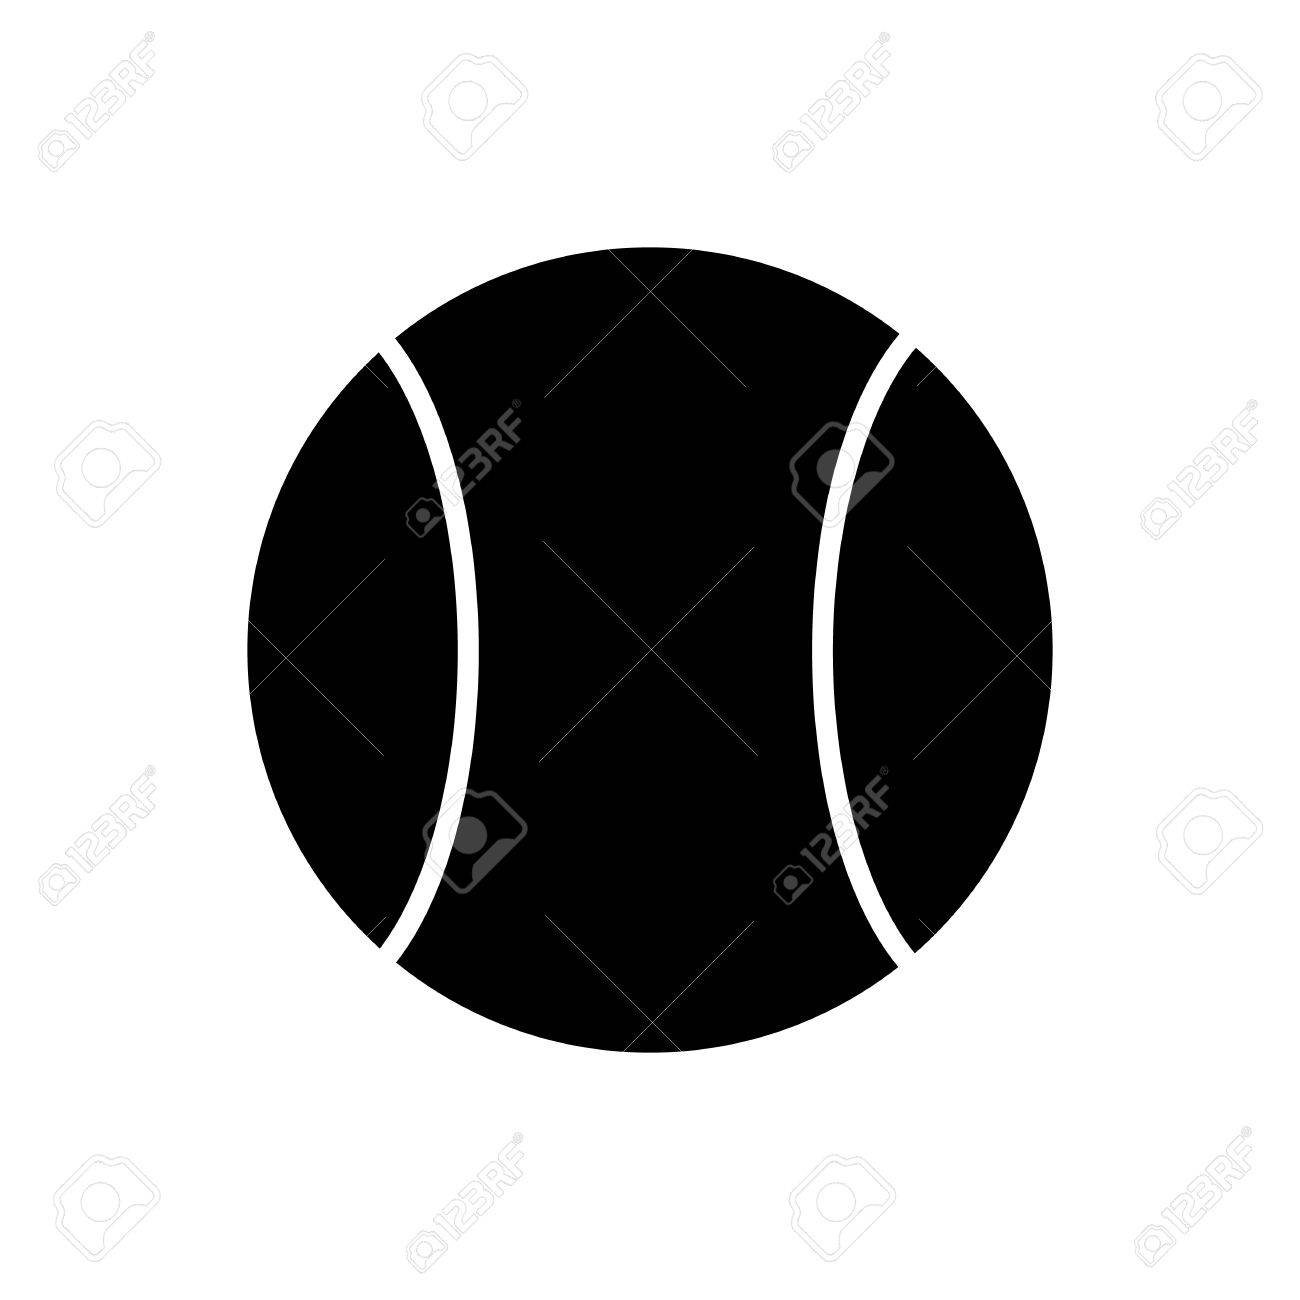 1300x1300 Black Tennis Ball Silhouette Isolated On White Background Stock